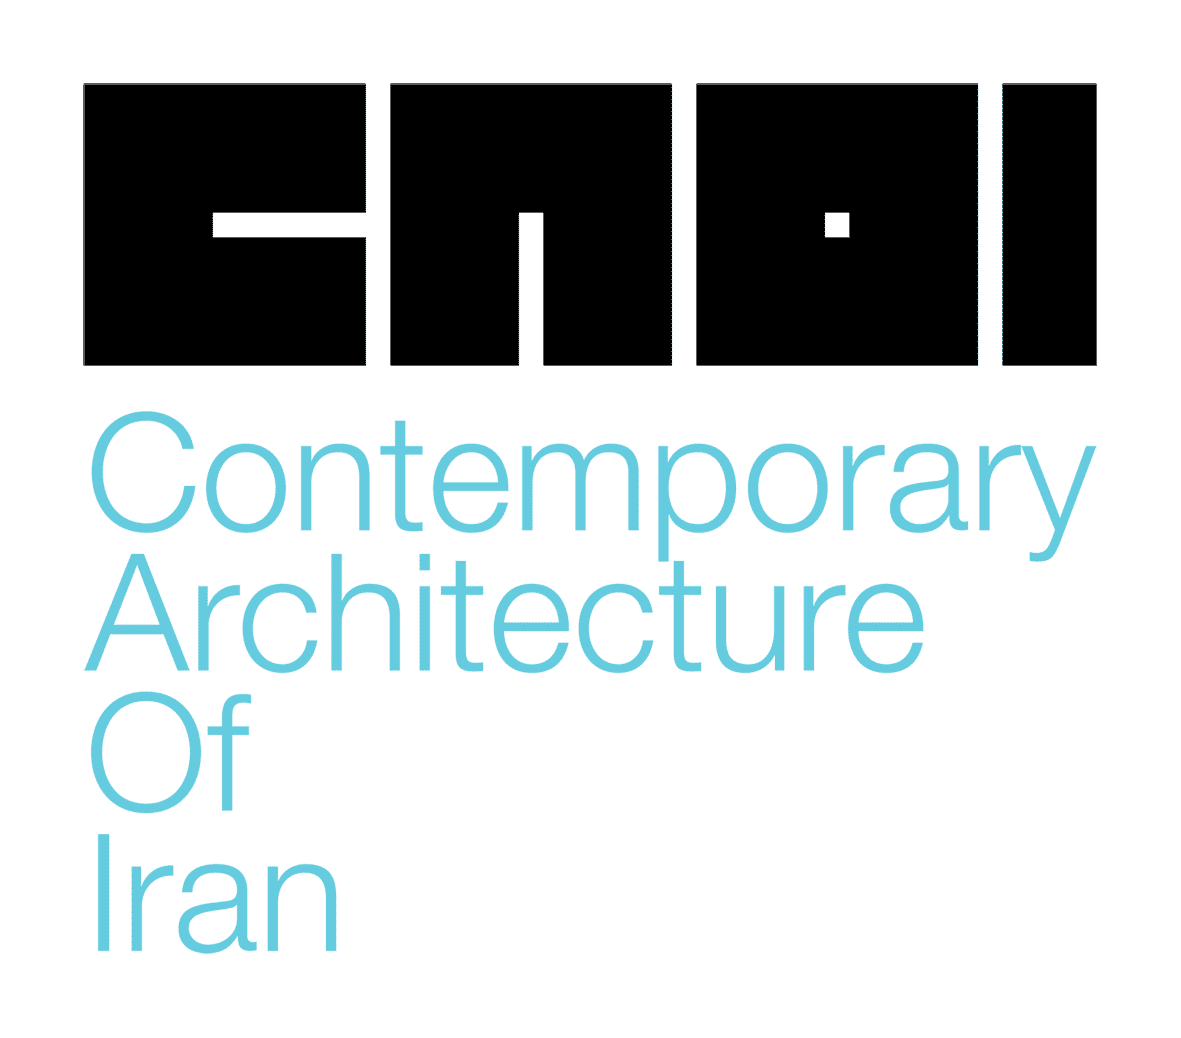 Contemporary Architecture of Iran